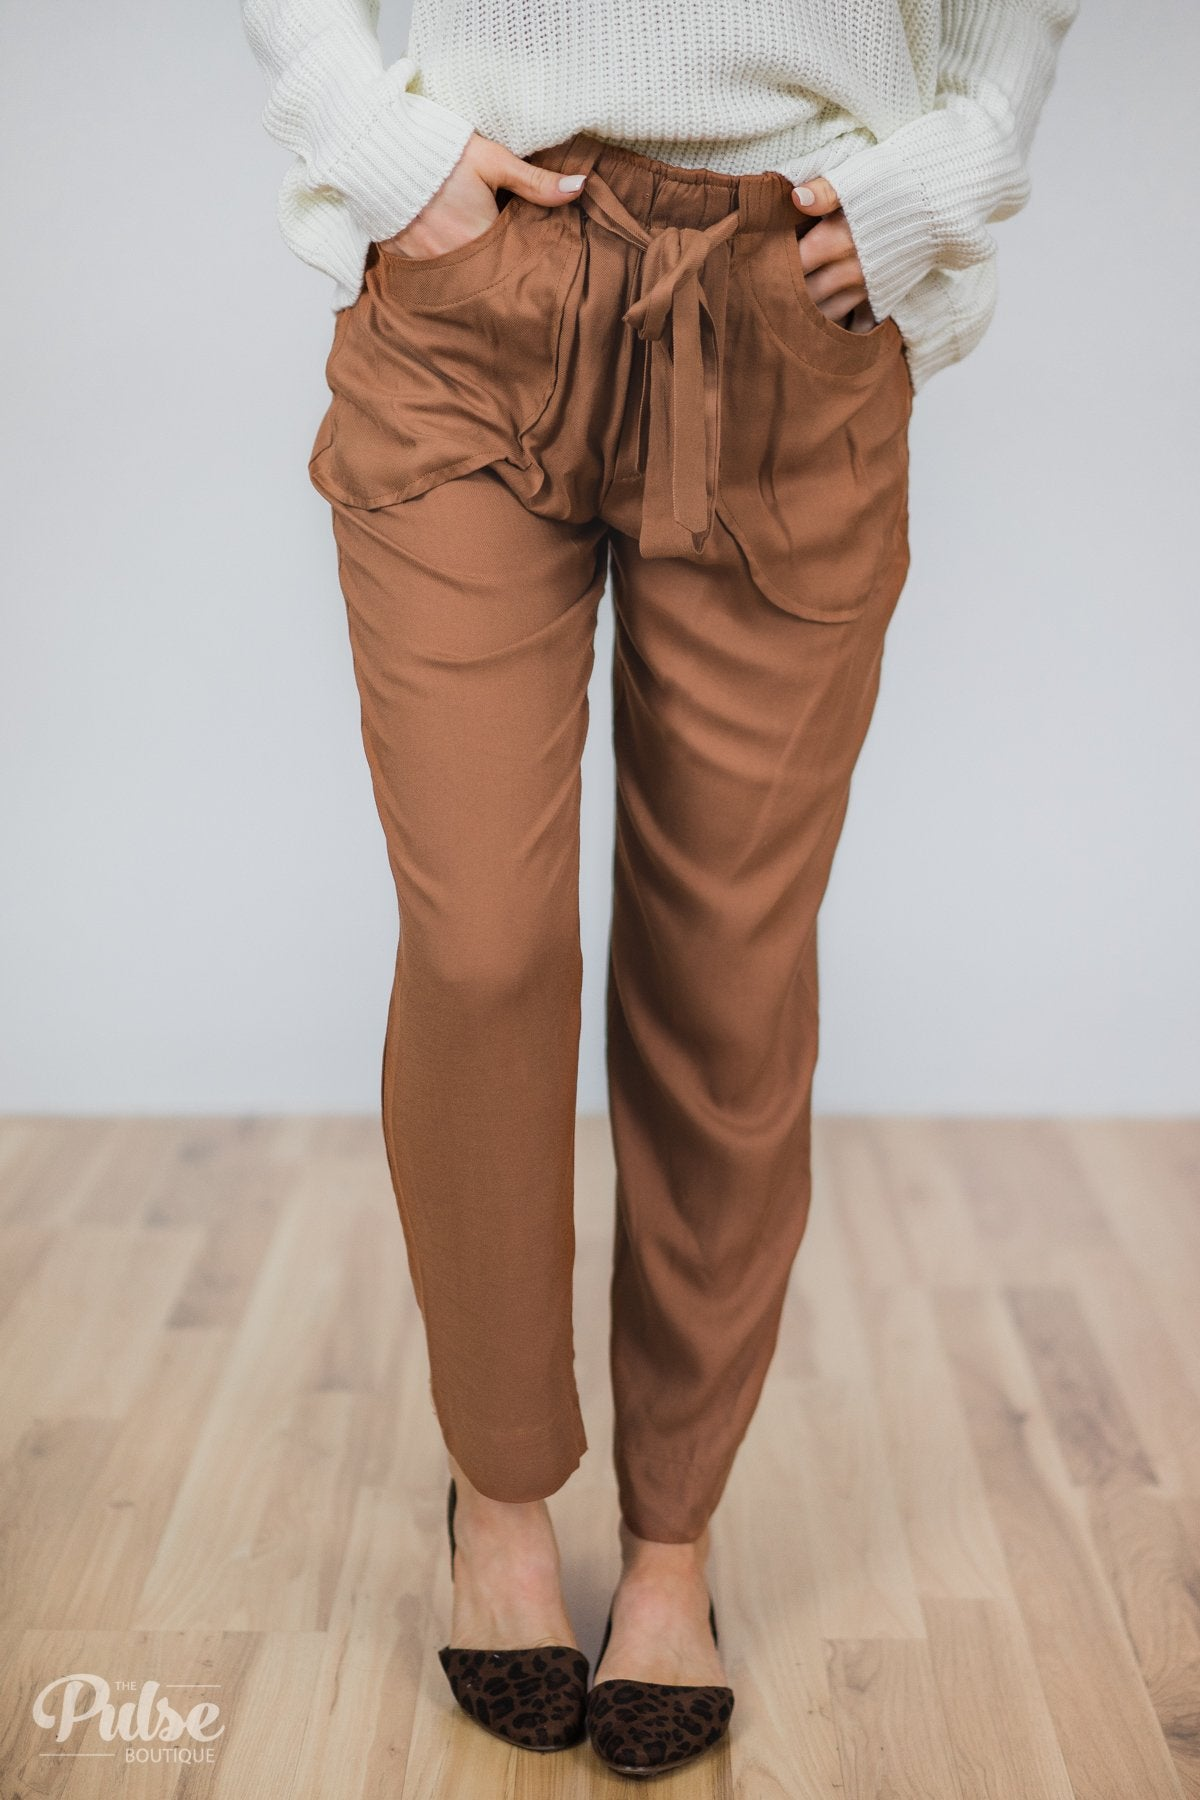 Rust Orange Pants